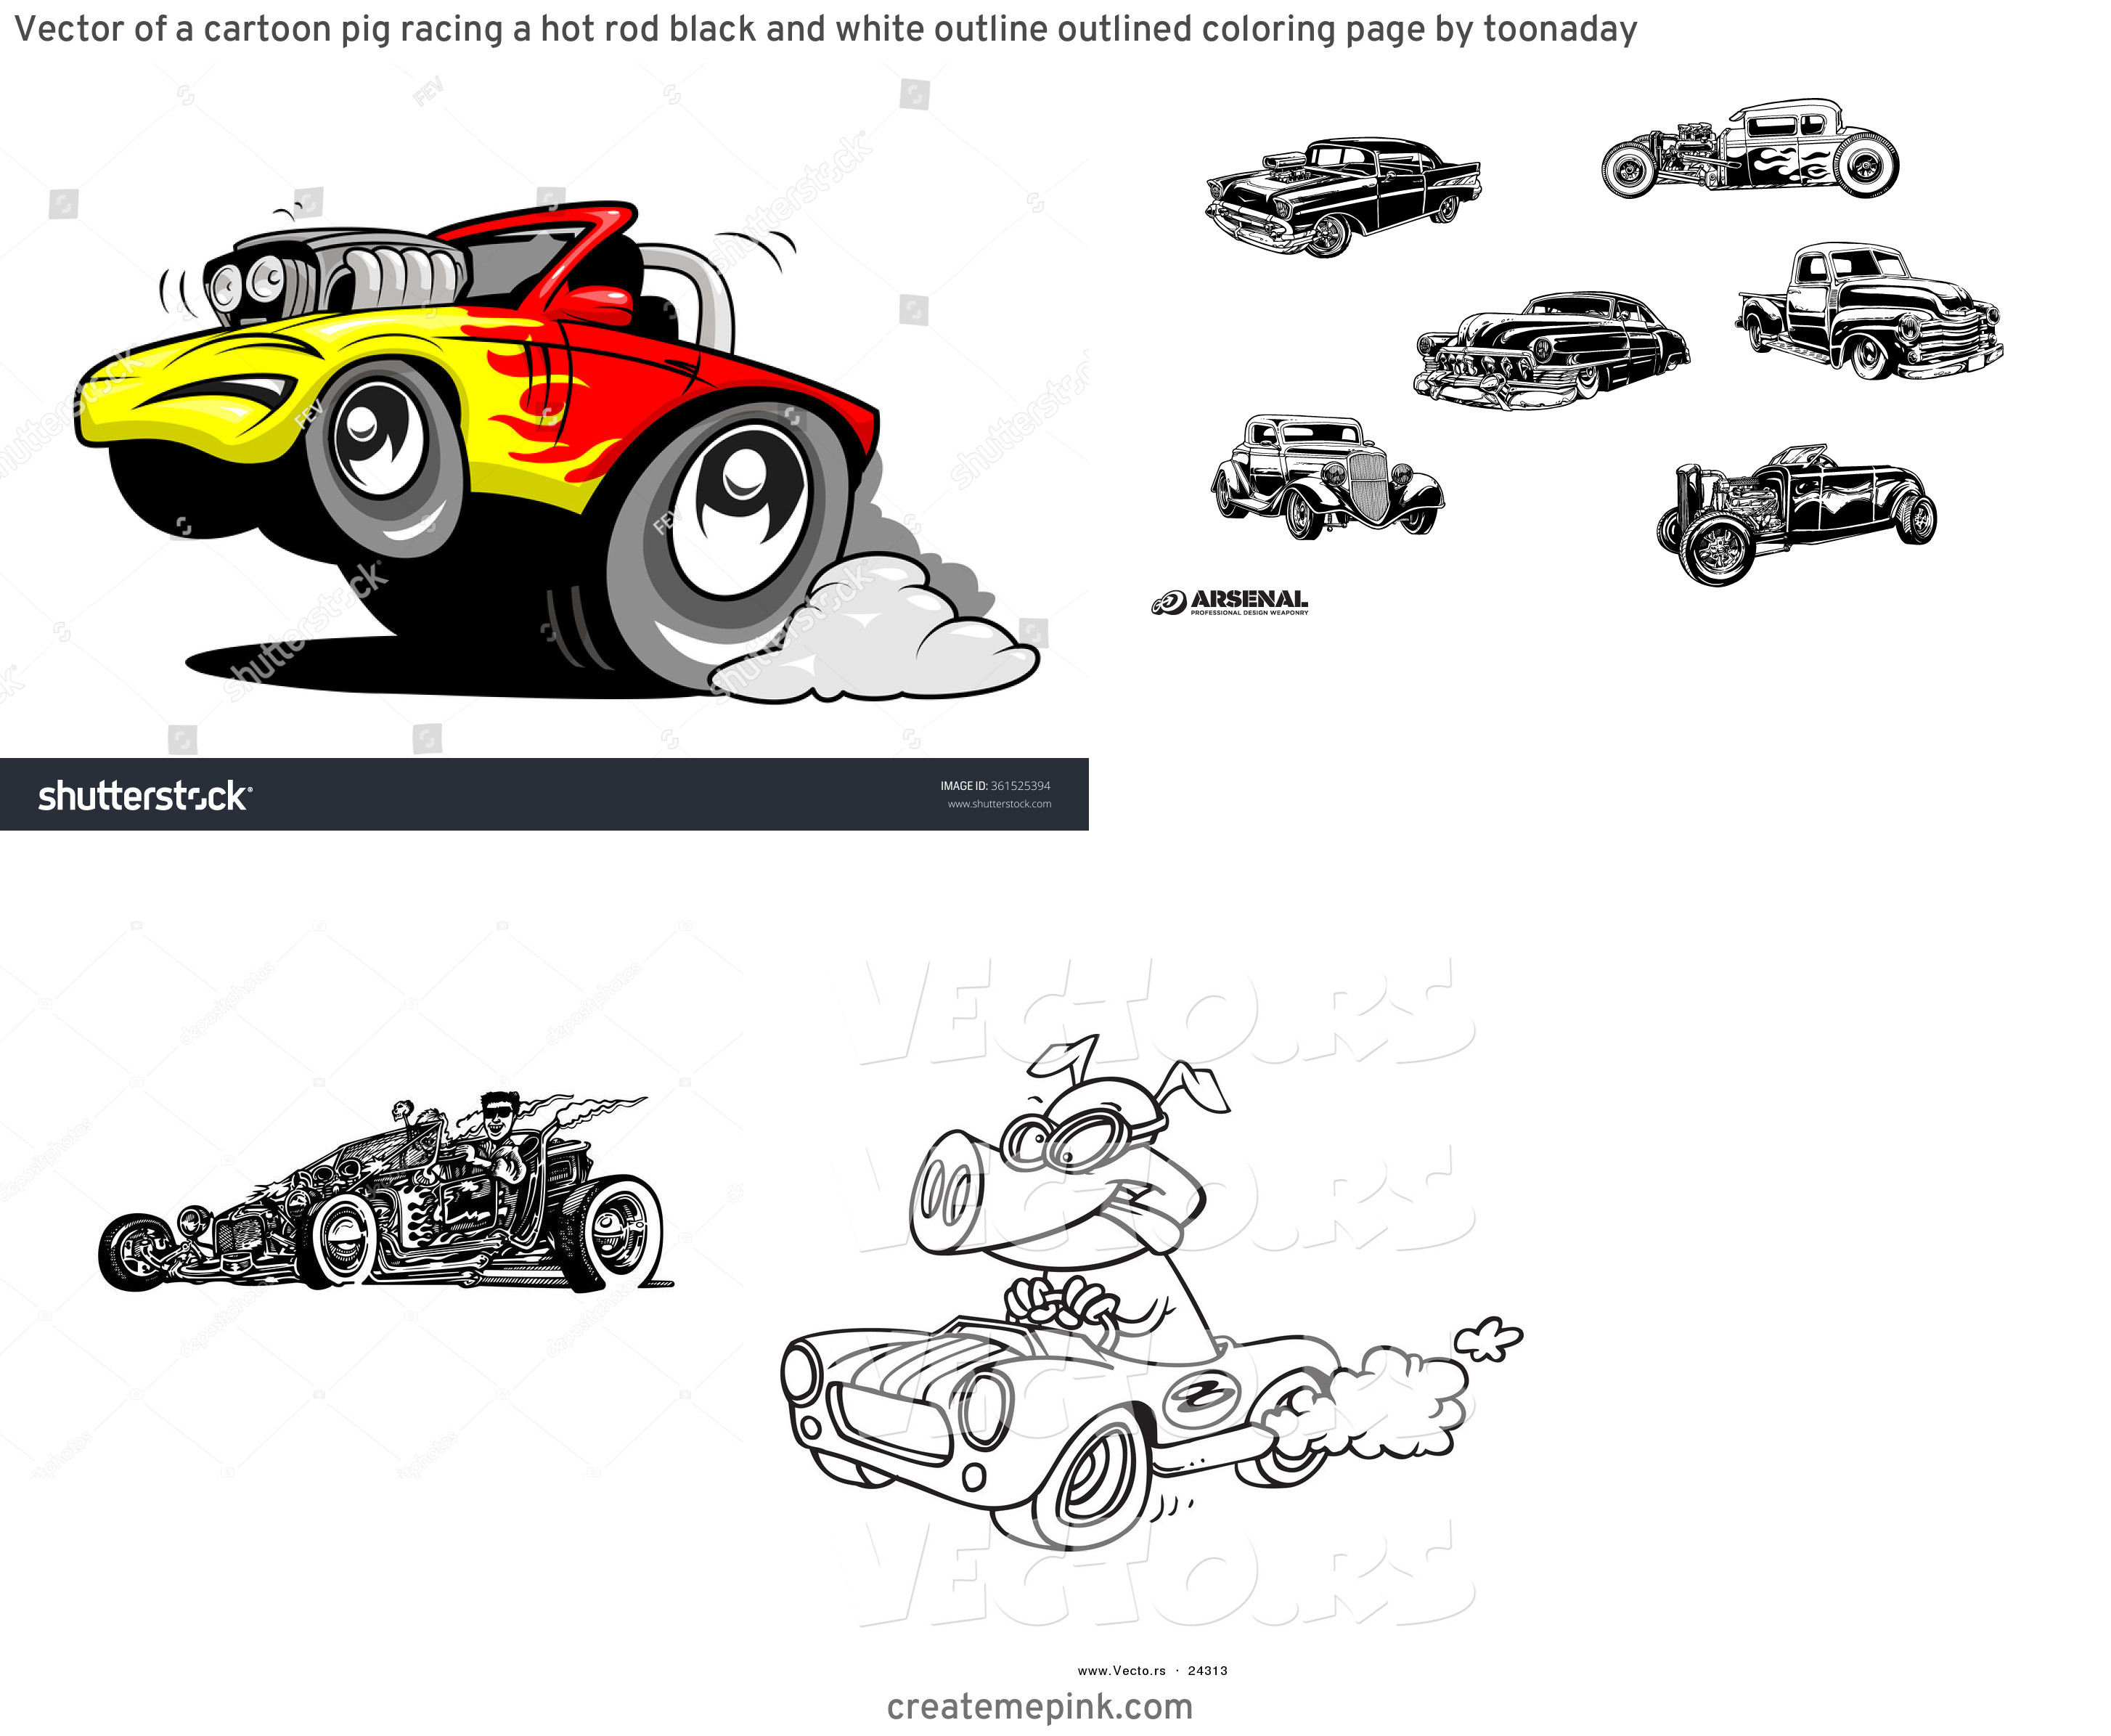 Vector Cartoon Hot Rod: Vector Of A Cartoon Pig Racing A Hot Rod Black And White Outline Outlined Coloring Page By Toonaday